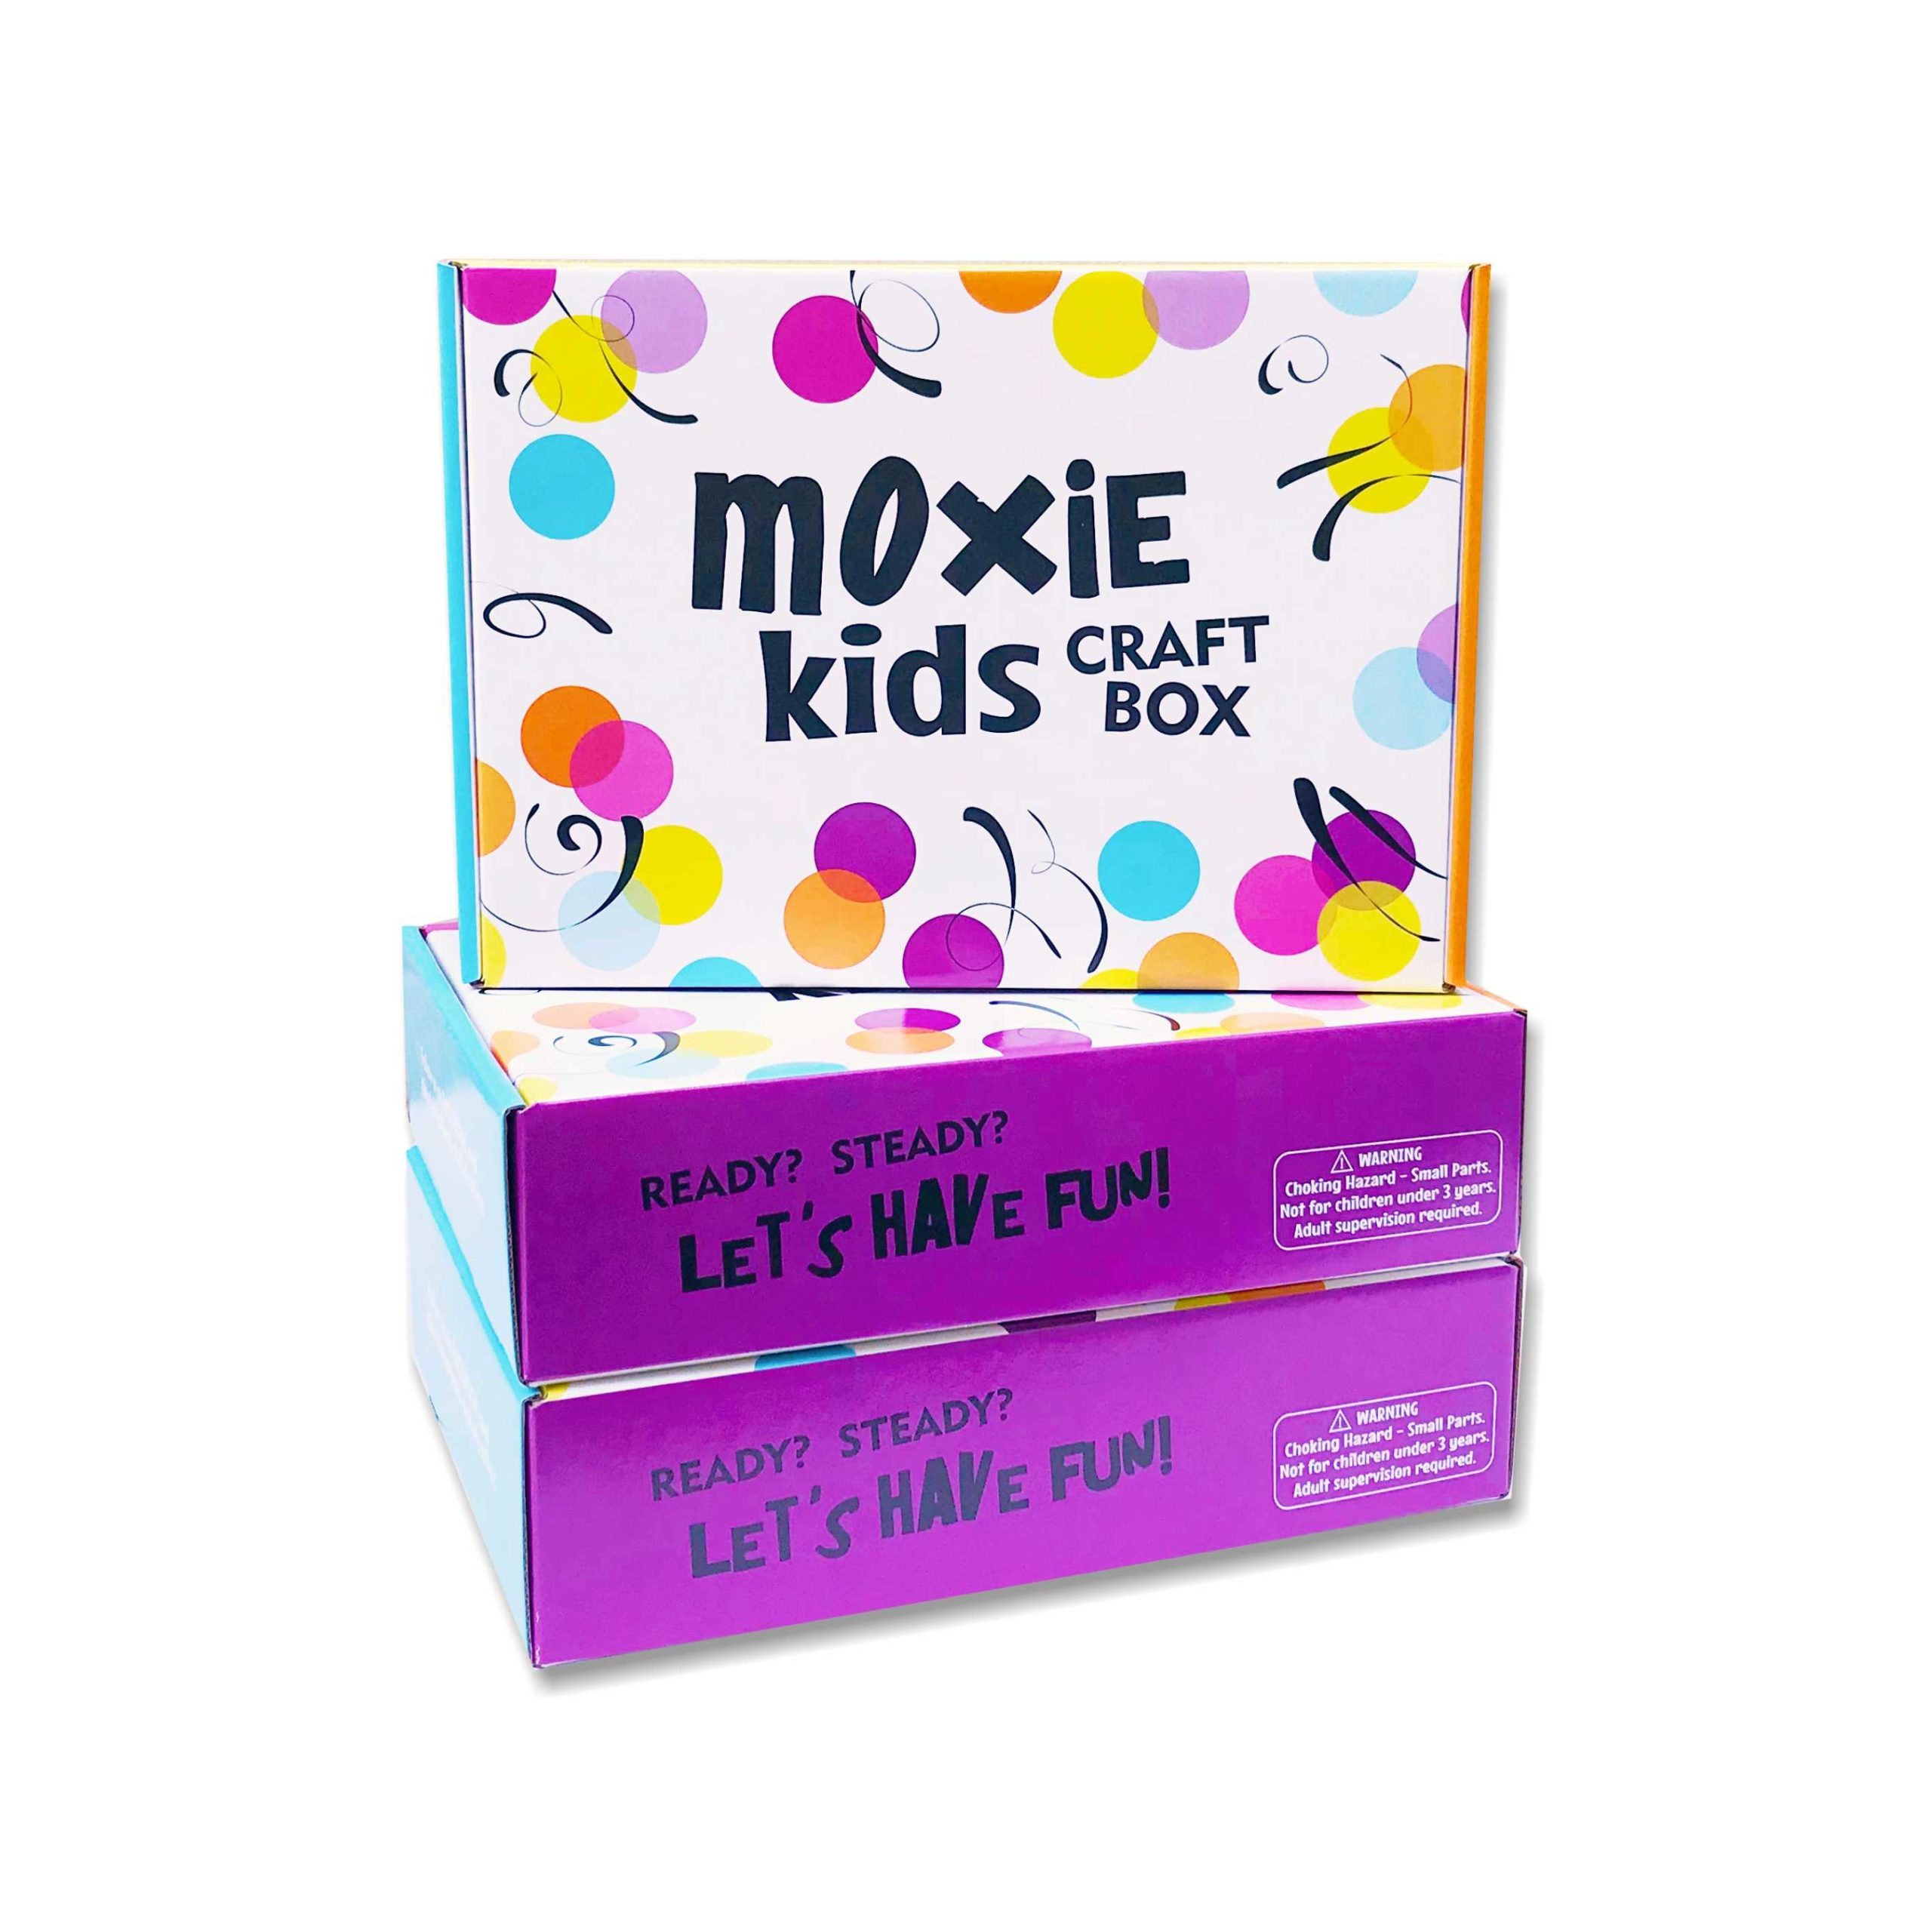 http://www.moxiekids.co.za/wp-content/uploads/2019/11/3-Month-1--scaled.jpg